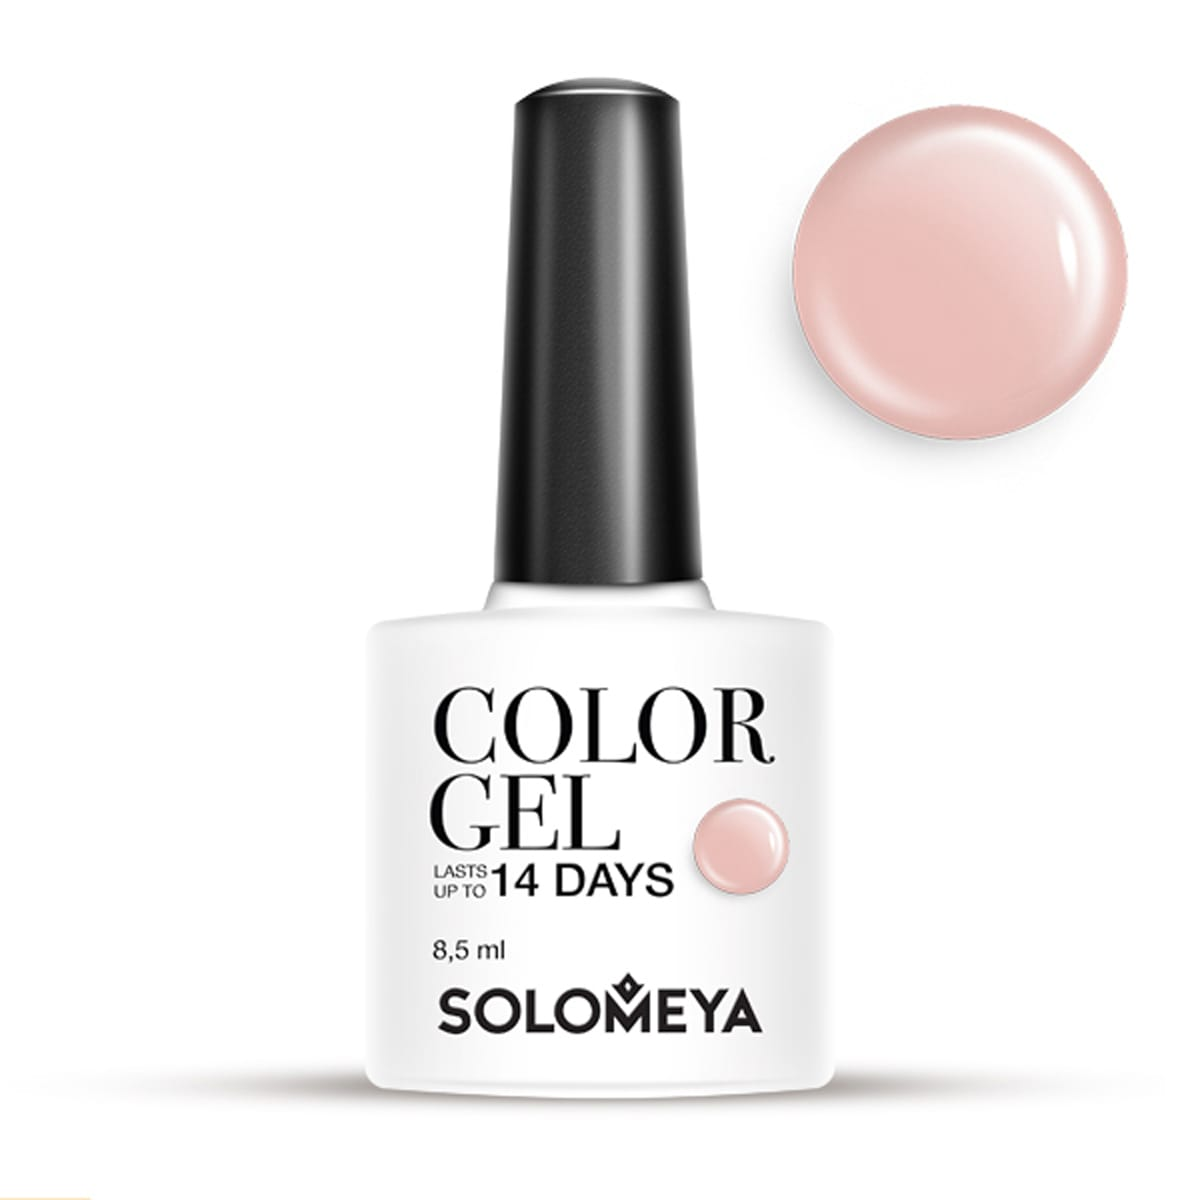 SOLOMEYA Гель-лак для ногтей SCG050 Латте / Color Gel Latte 8,5 мл фото